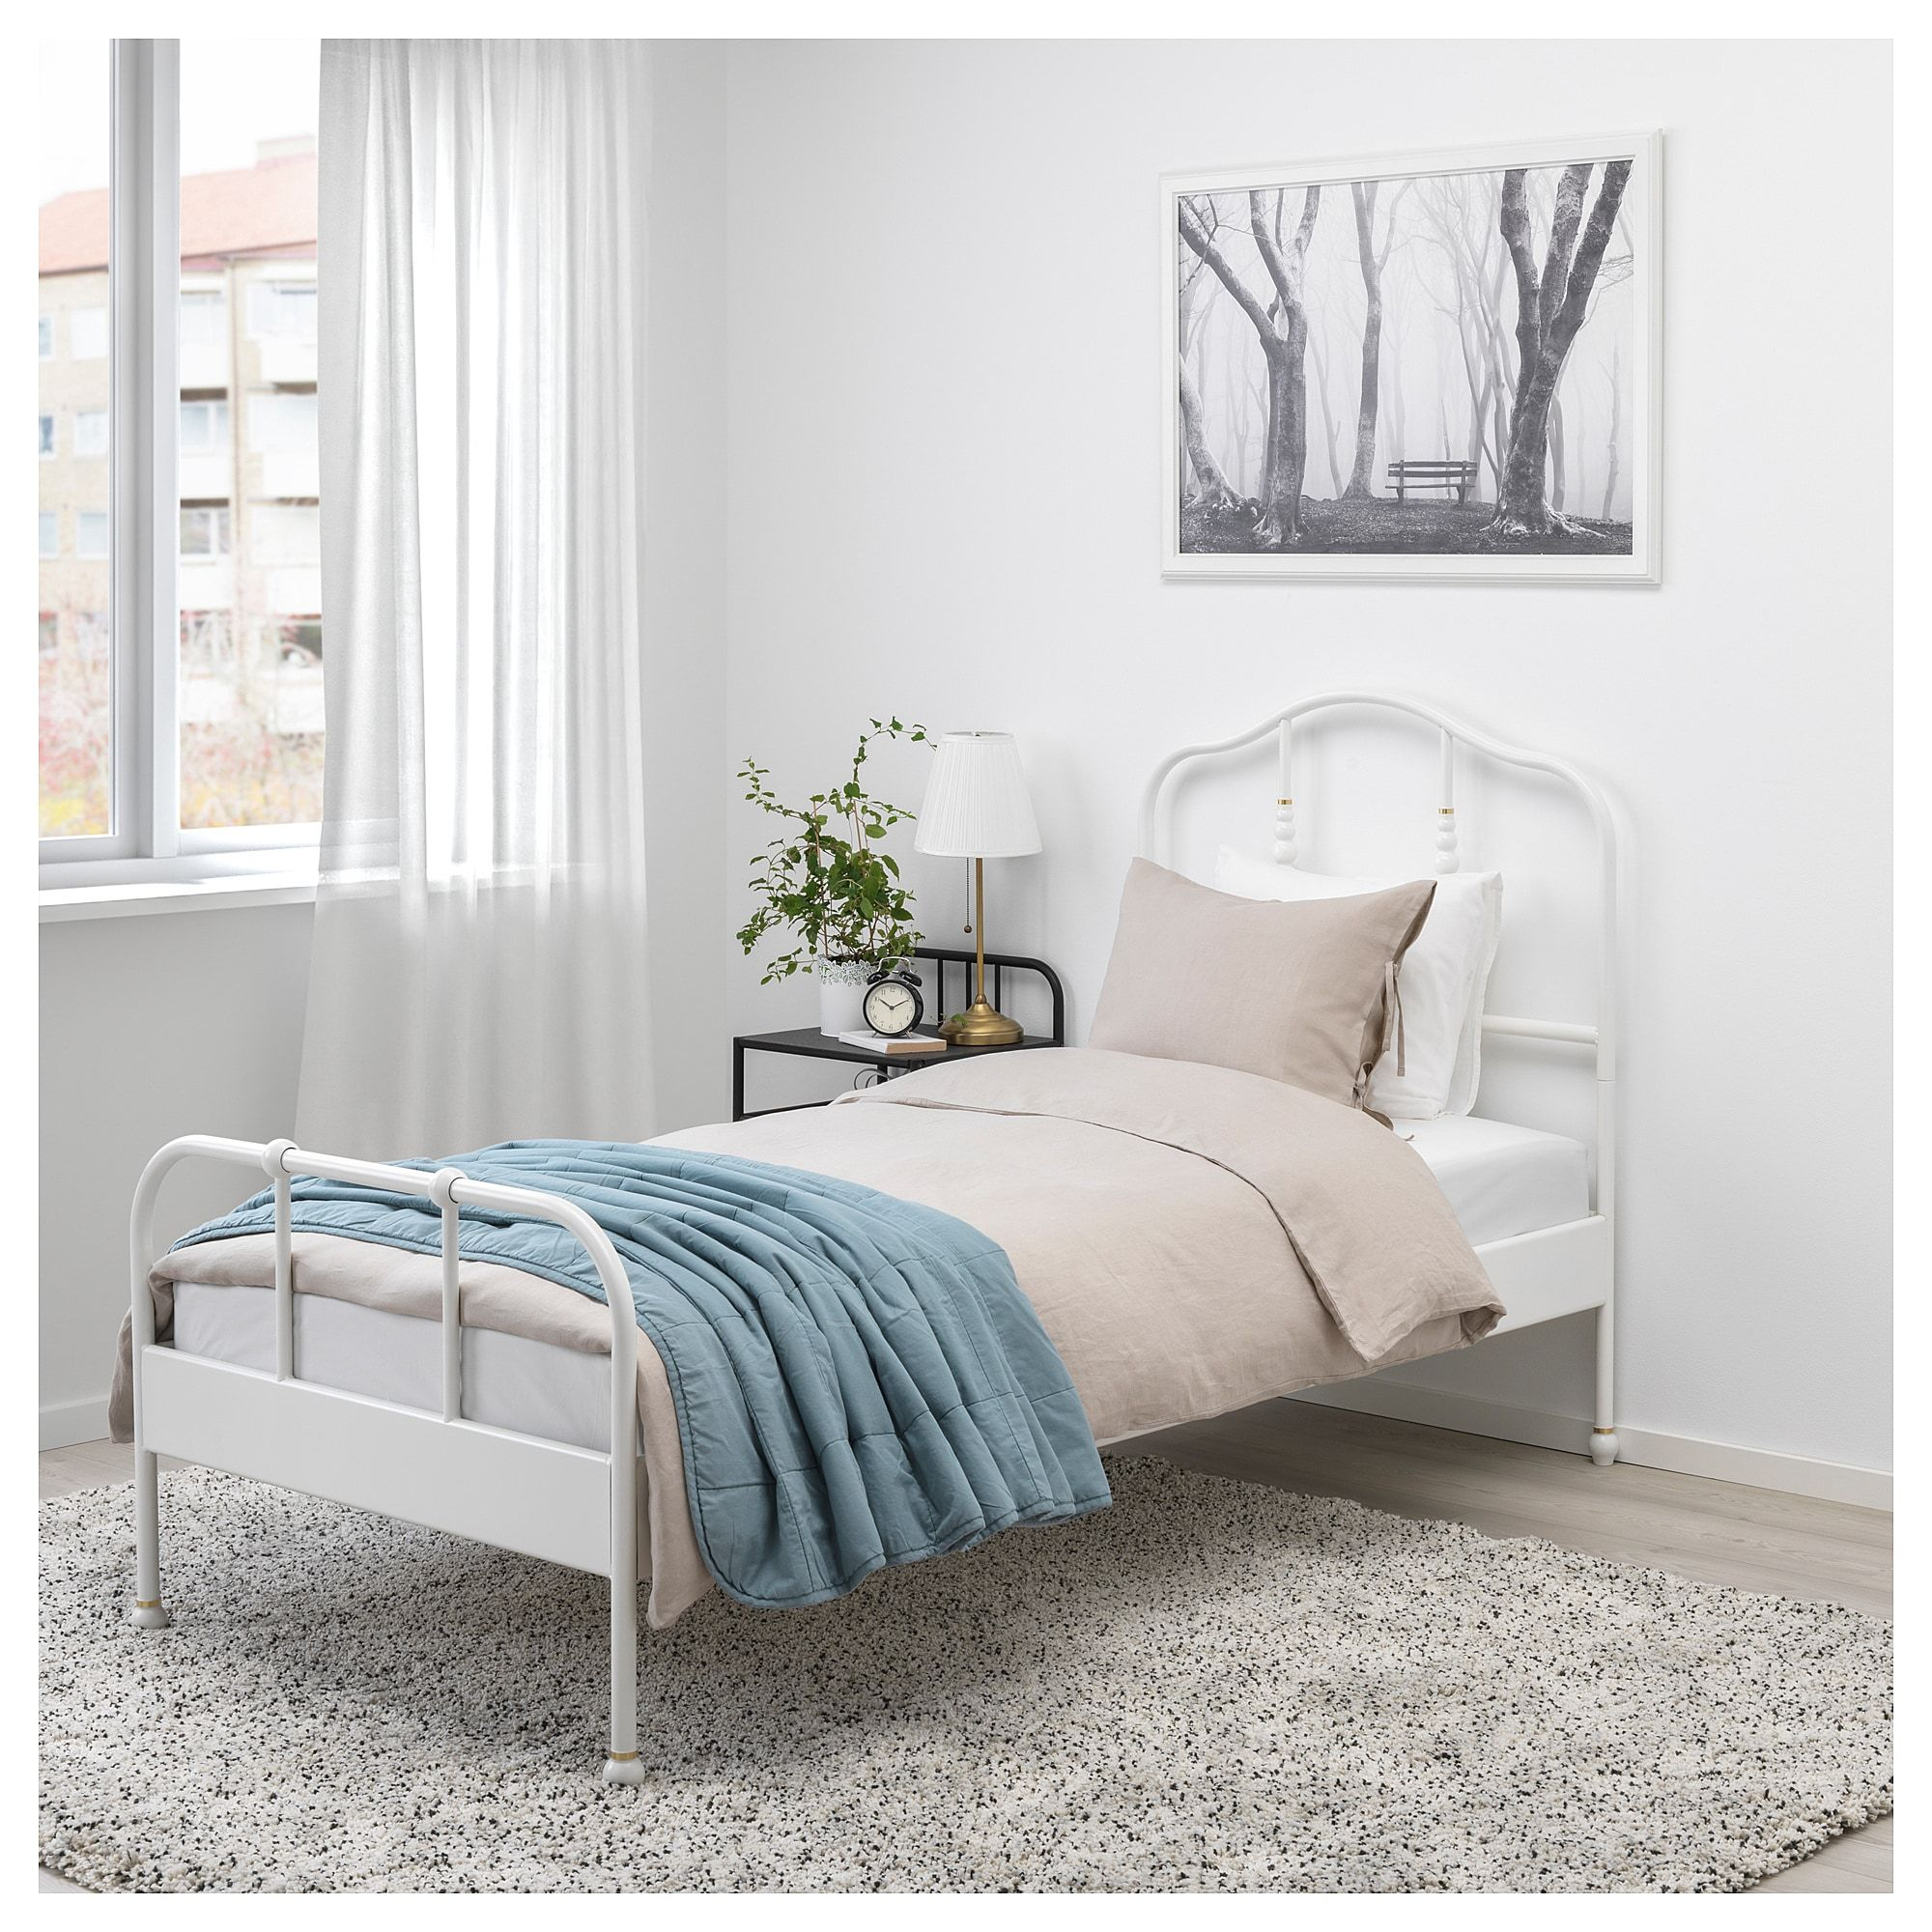 Sagstua Bed Frame White Luroy Twin Bed Frame Comfort